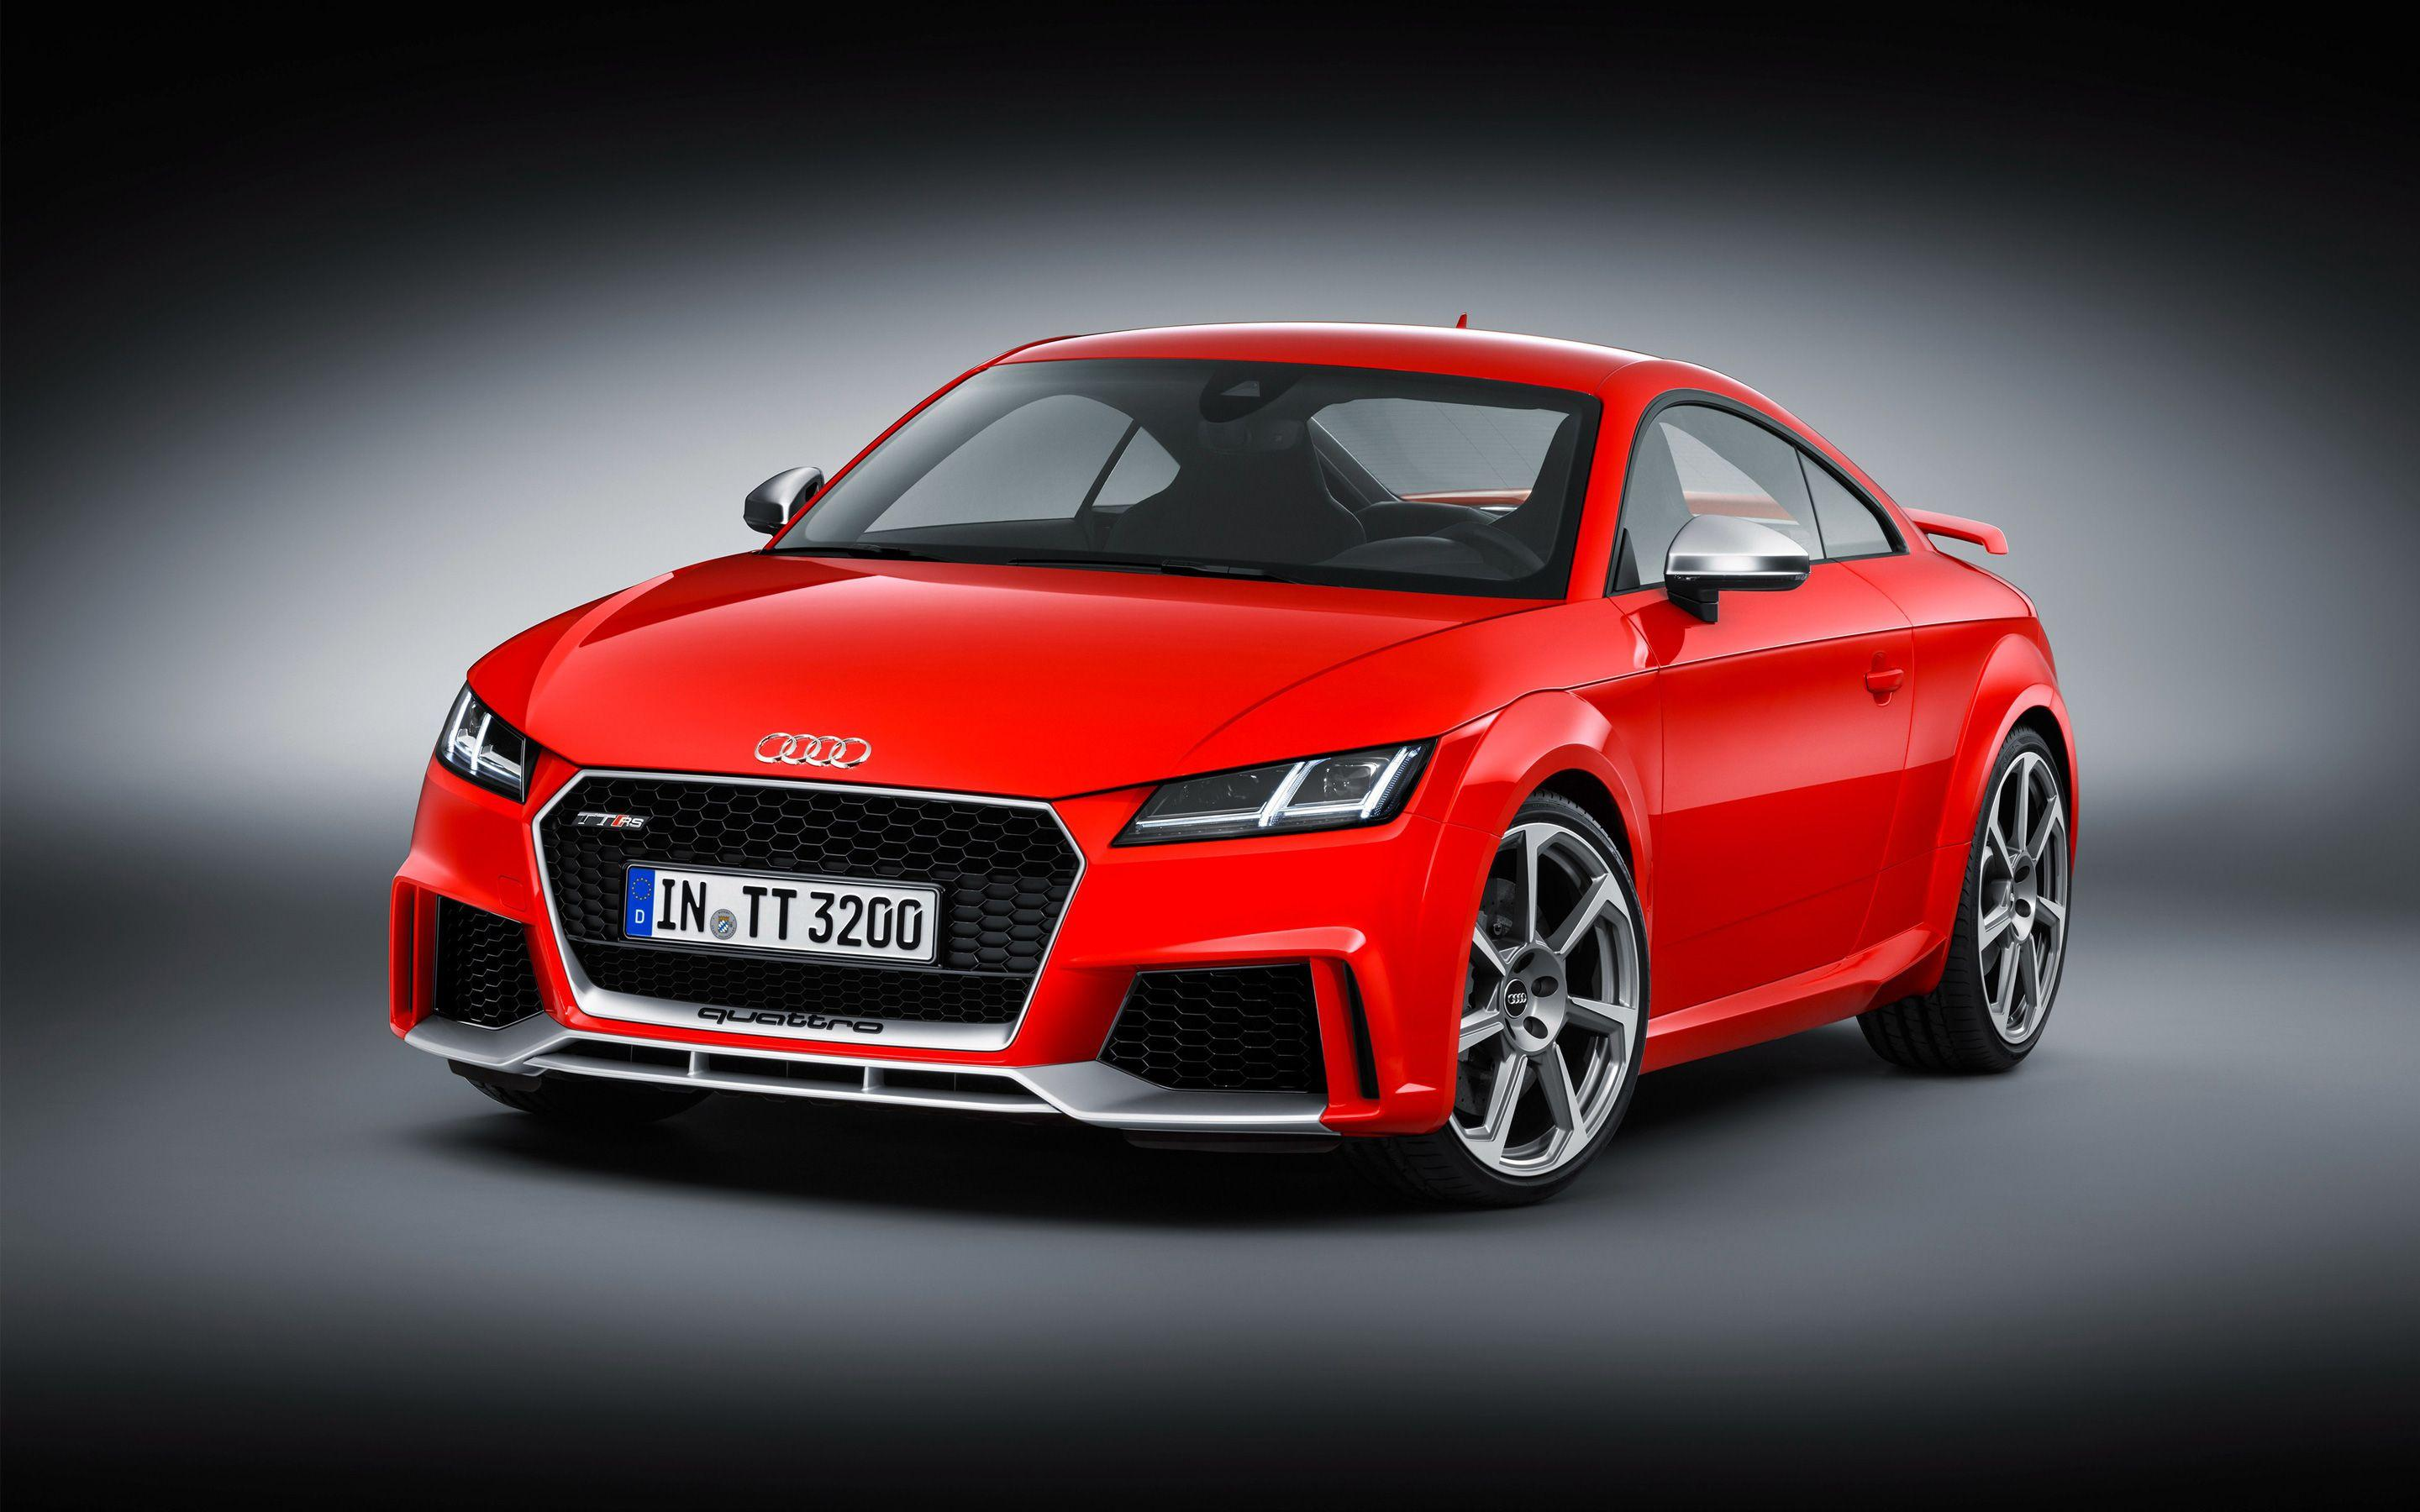 2017 Audi TT RS Coupe Wallpapers | HD Wallpapers